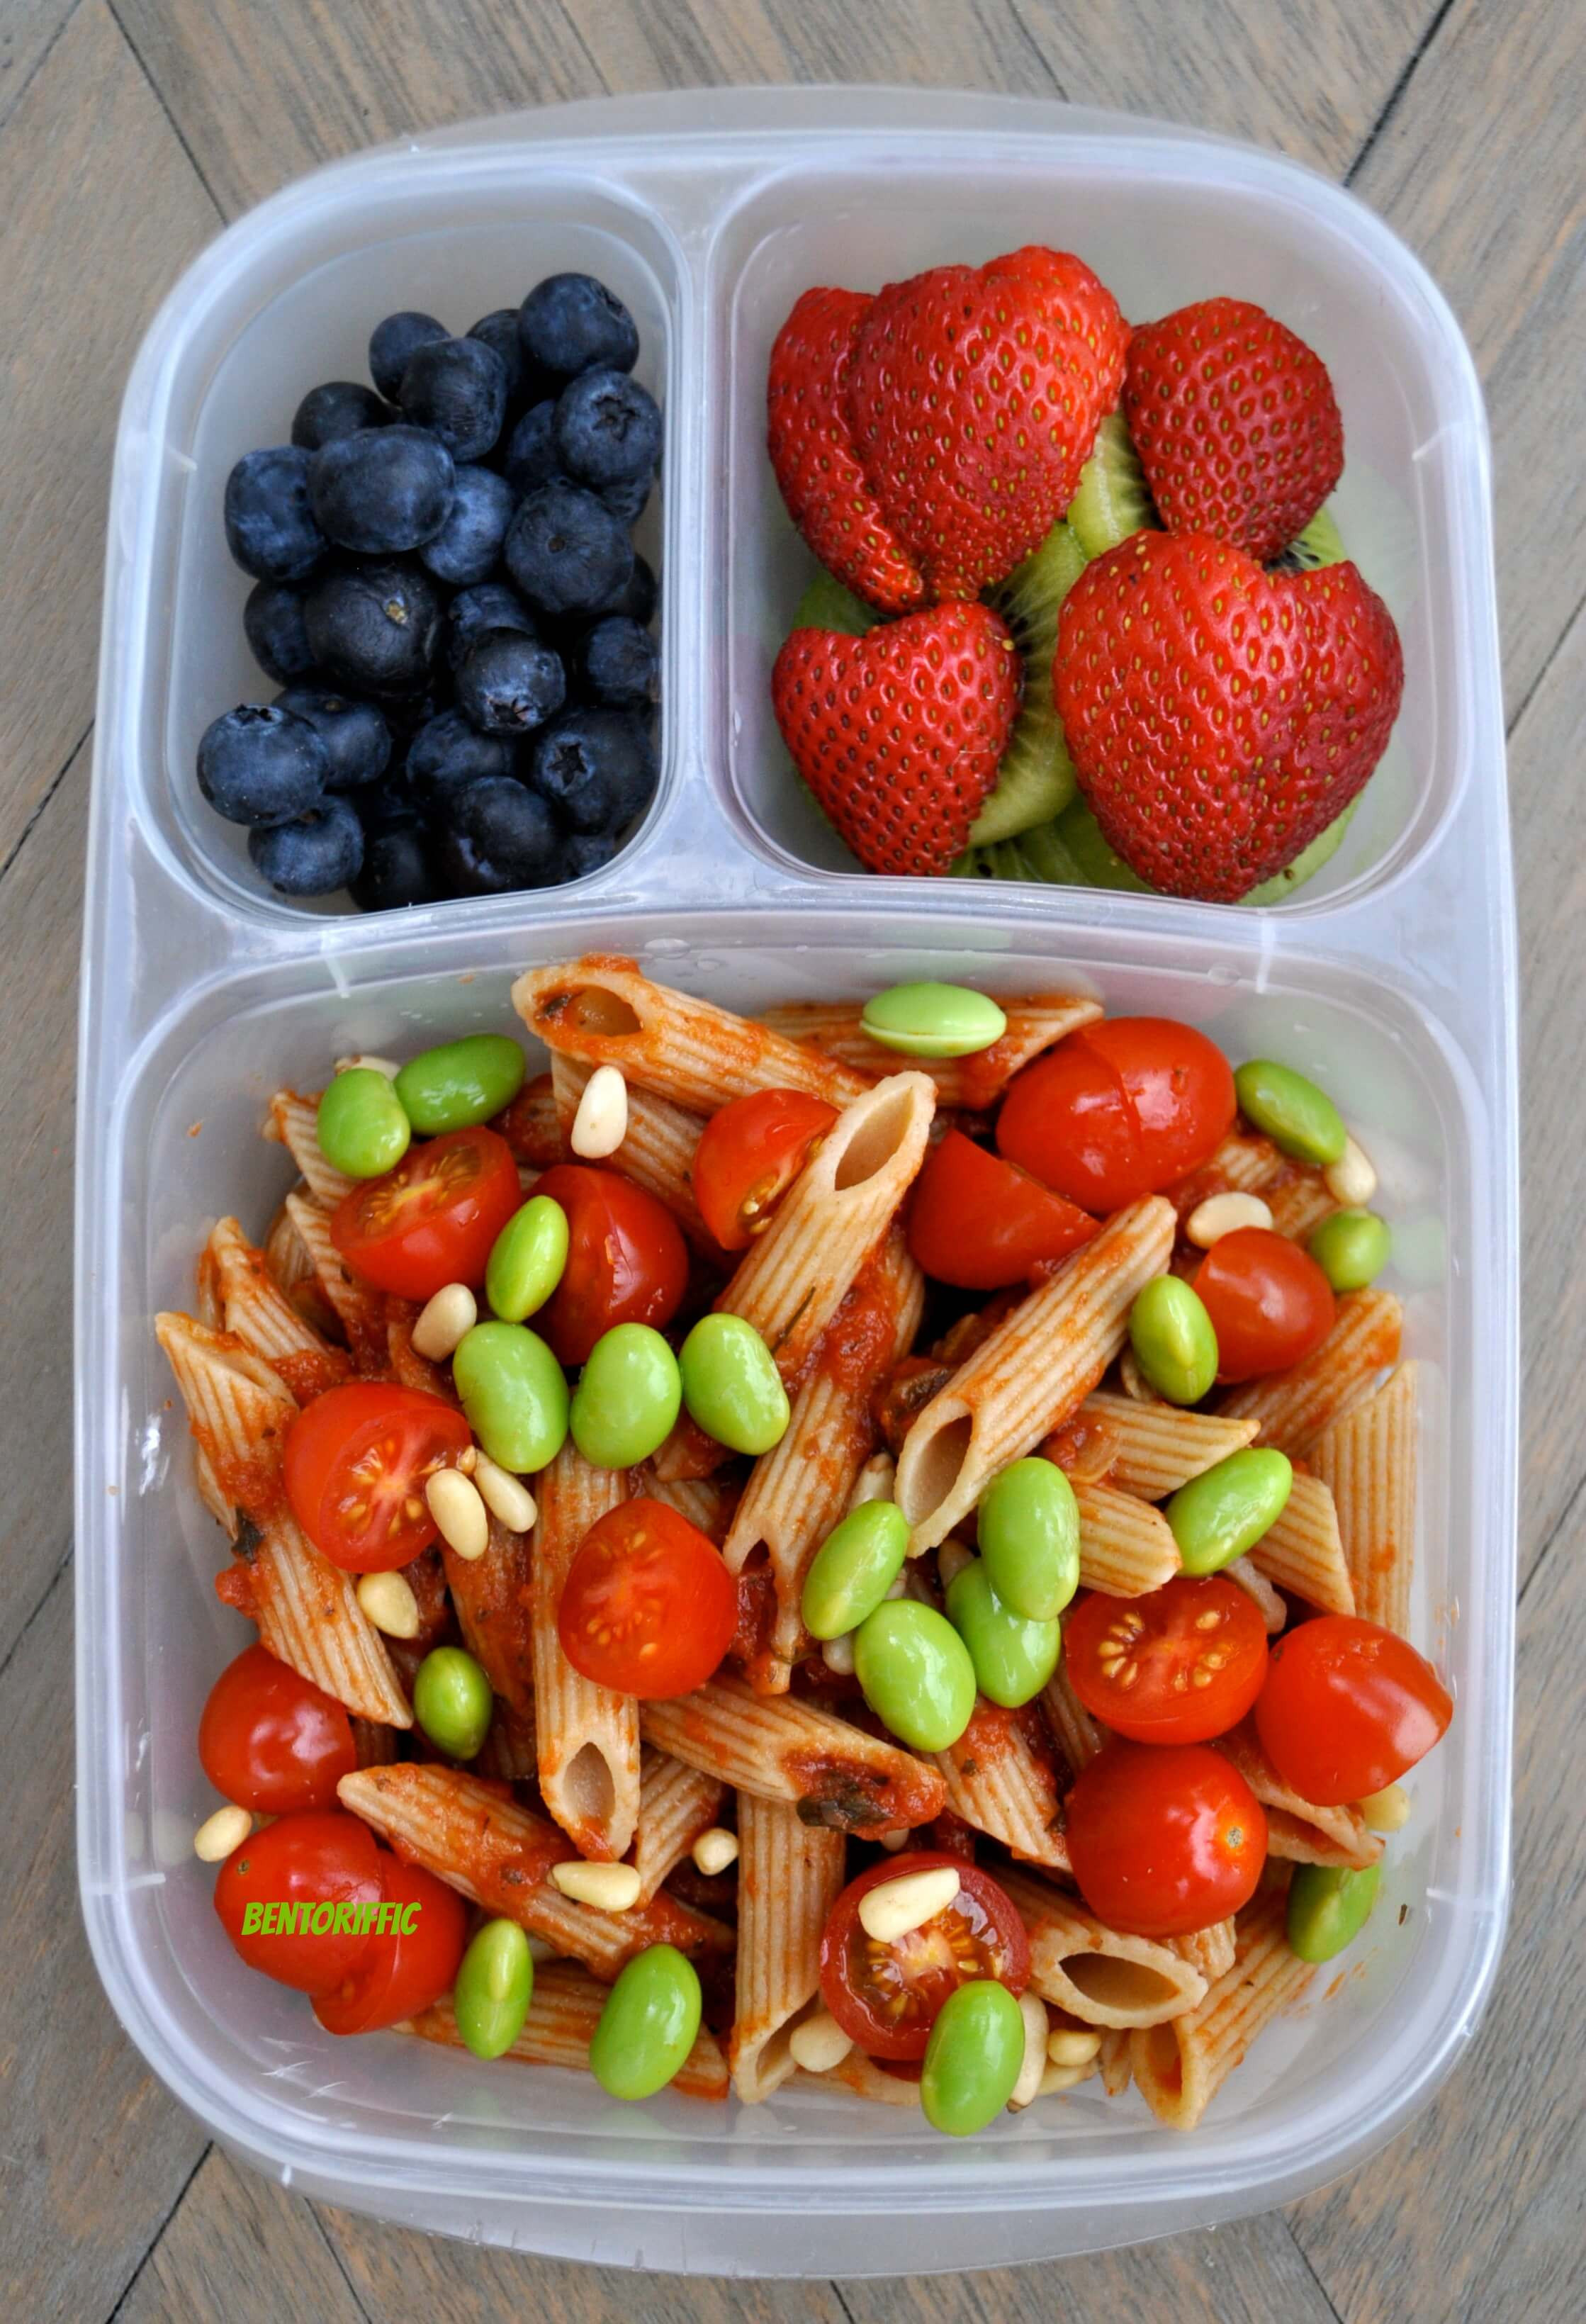 Healthy Vegan Lunches  23 Healthy Vegan Back to School Recipes Your Kids Will